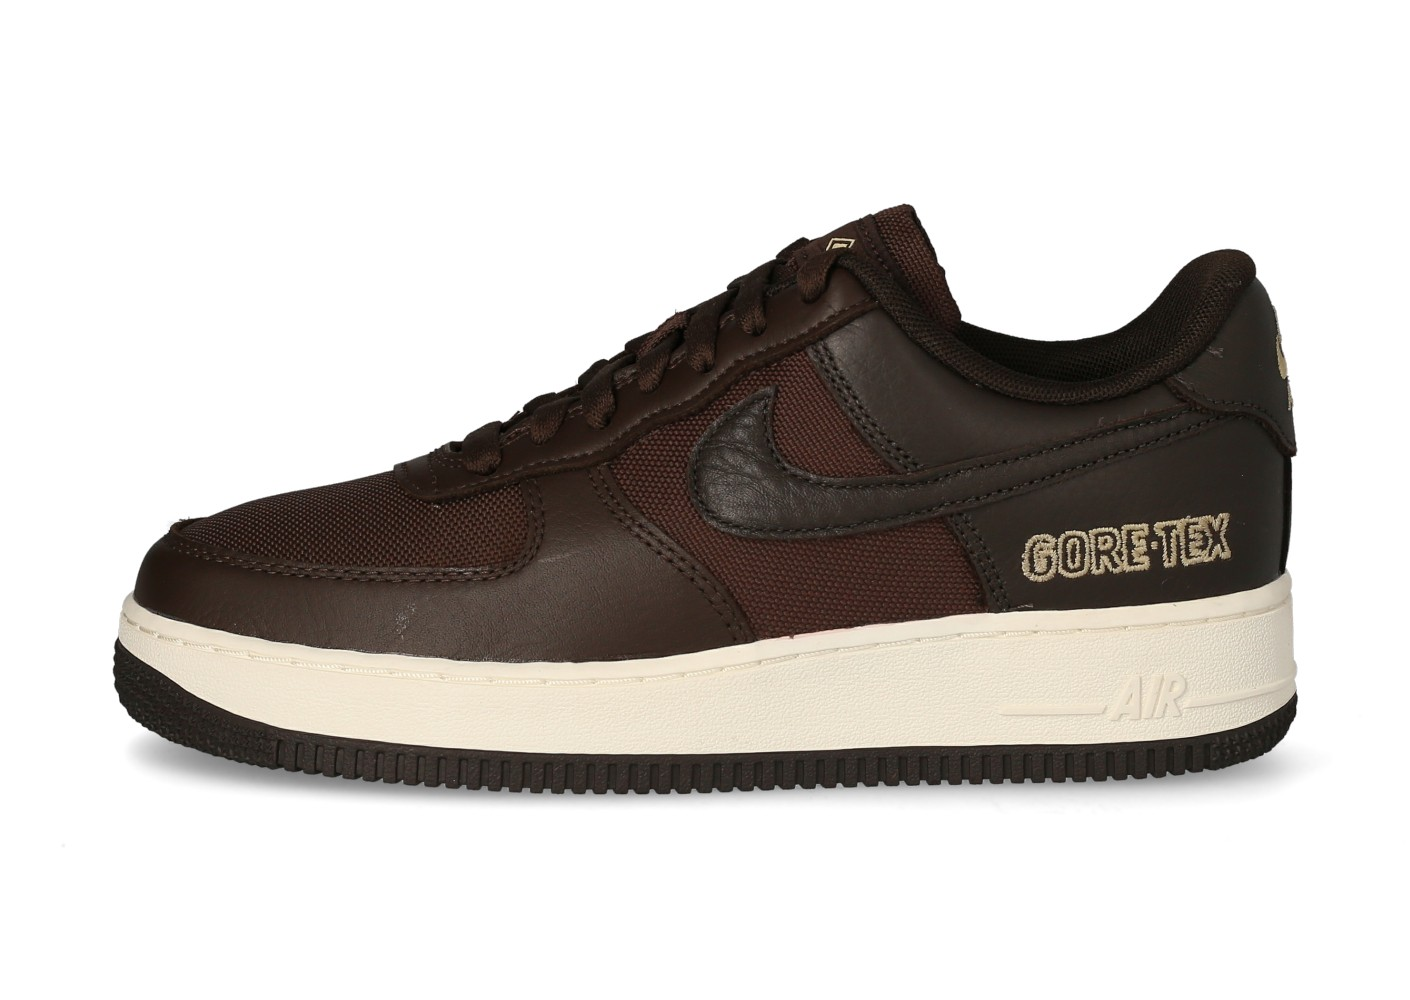 Nike Air Force 1 Gore tex marron - Chaussures Baskets homme - Pochta